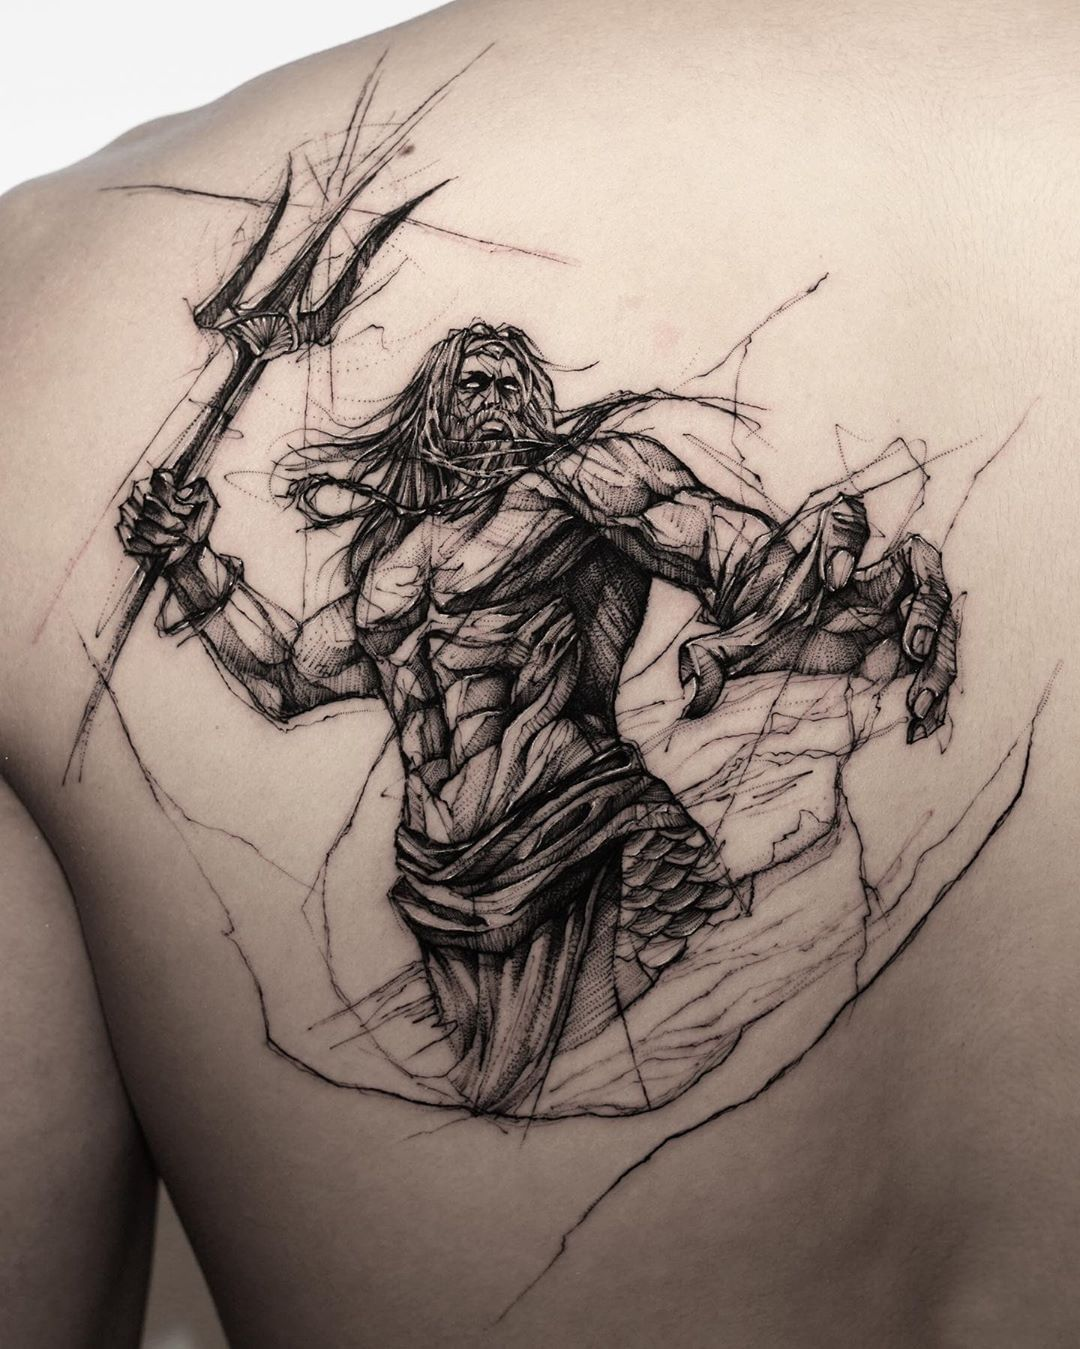 57 Mythology Tattoos Ideas You Will Love | Outsons | Men's Fashion Tips And Style Guide For 2020